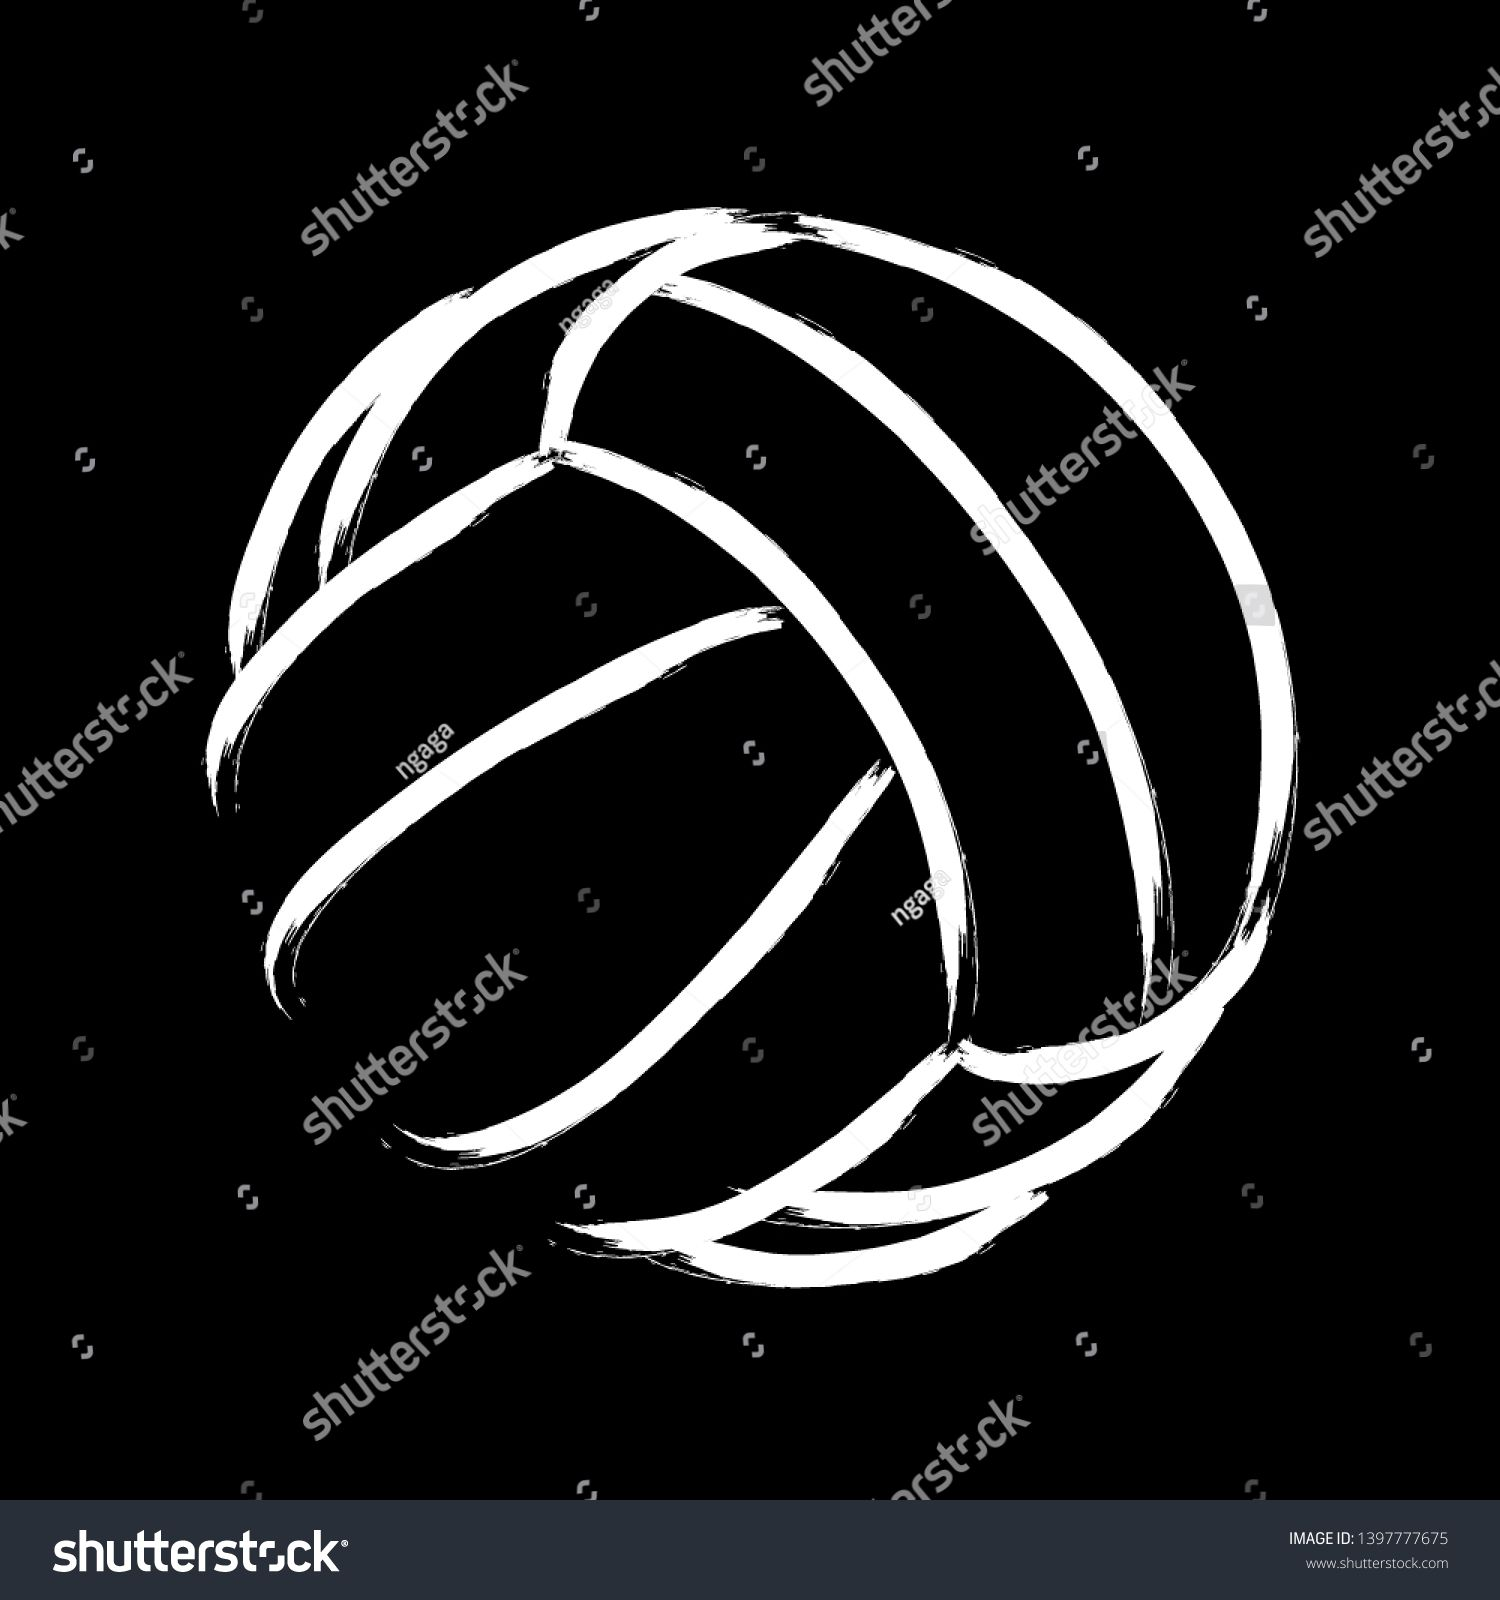 Stylized Illustration Hand Drawing Of A Volleyball Background Sport Vector Ad Ad Hand Drawing Stylized How To Draw Hands Volleyball Backgrounds Stylized